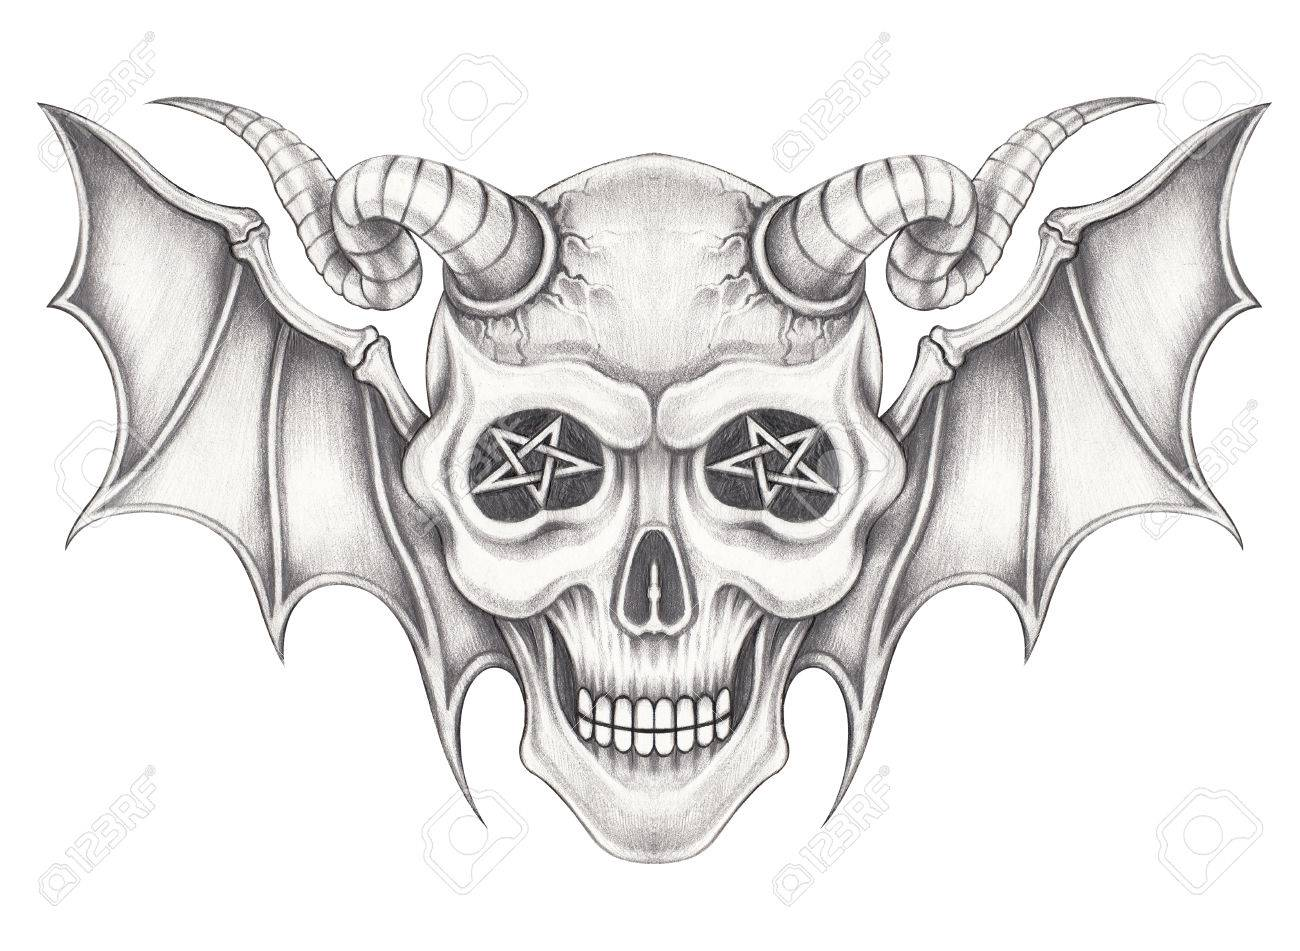 Art wings devil skull hand pencil drawing on paper